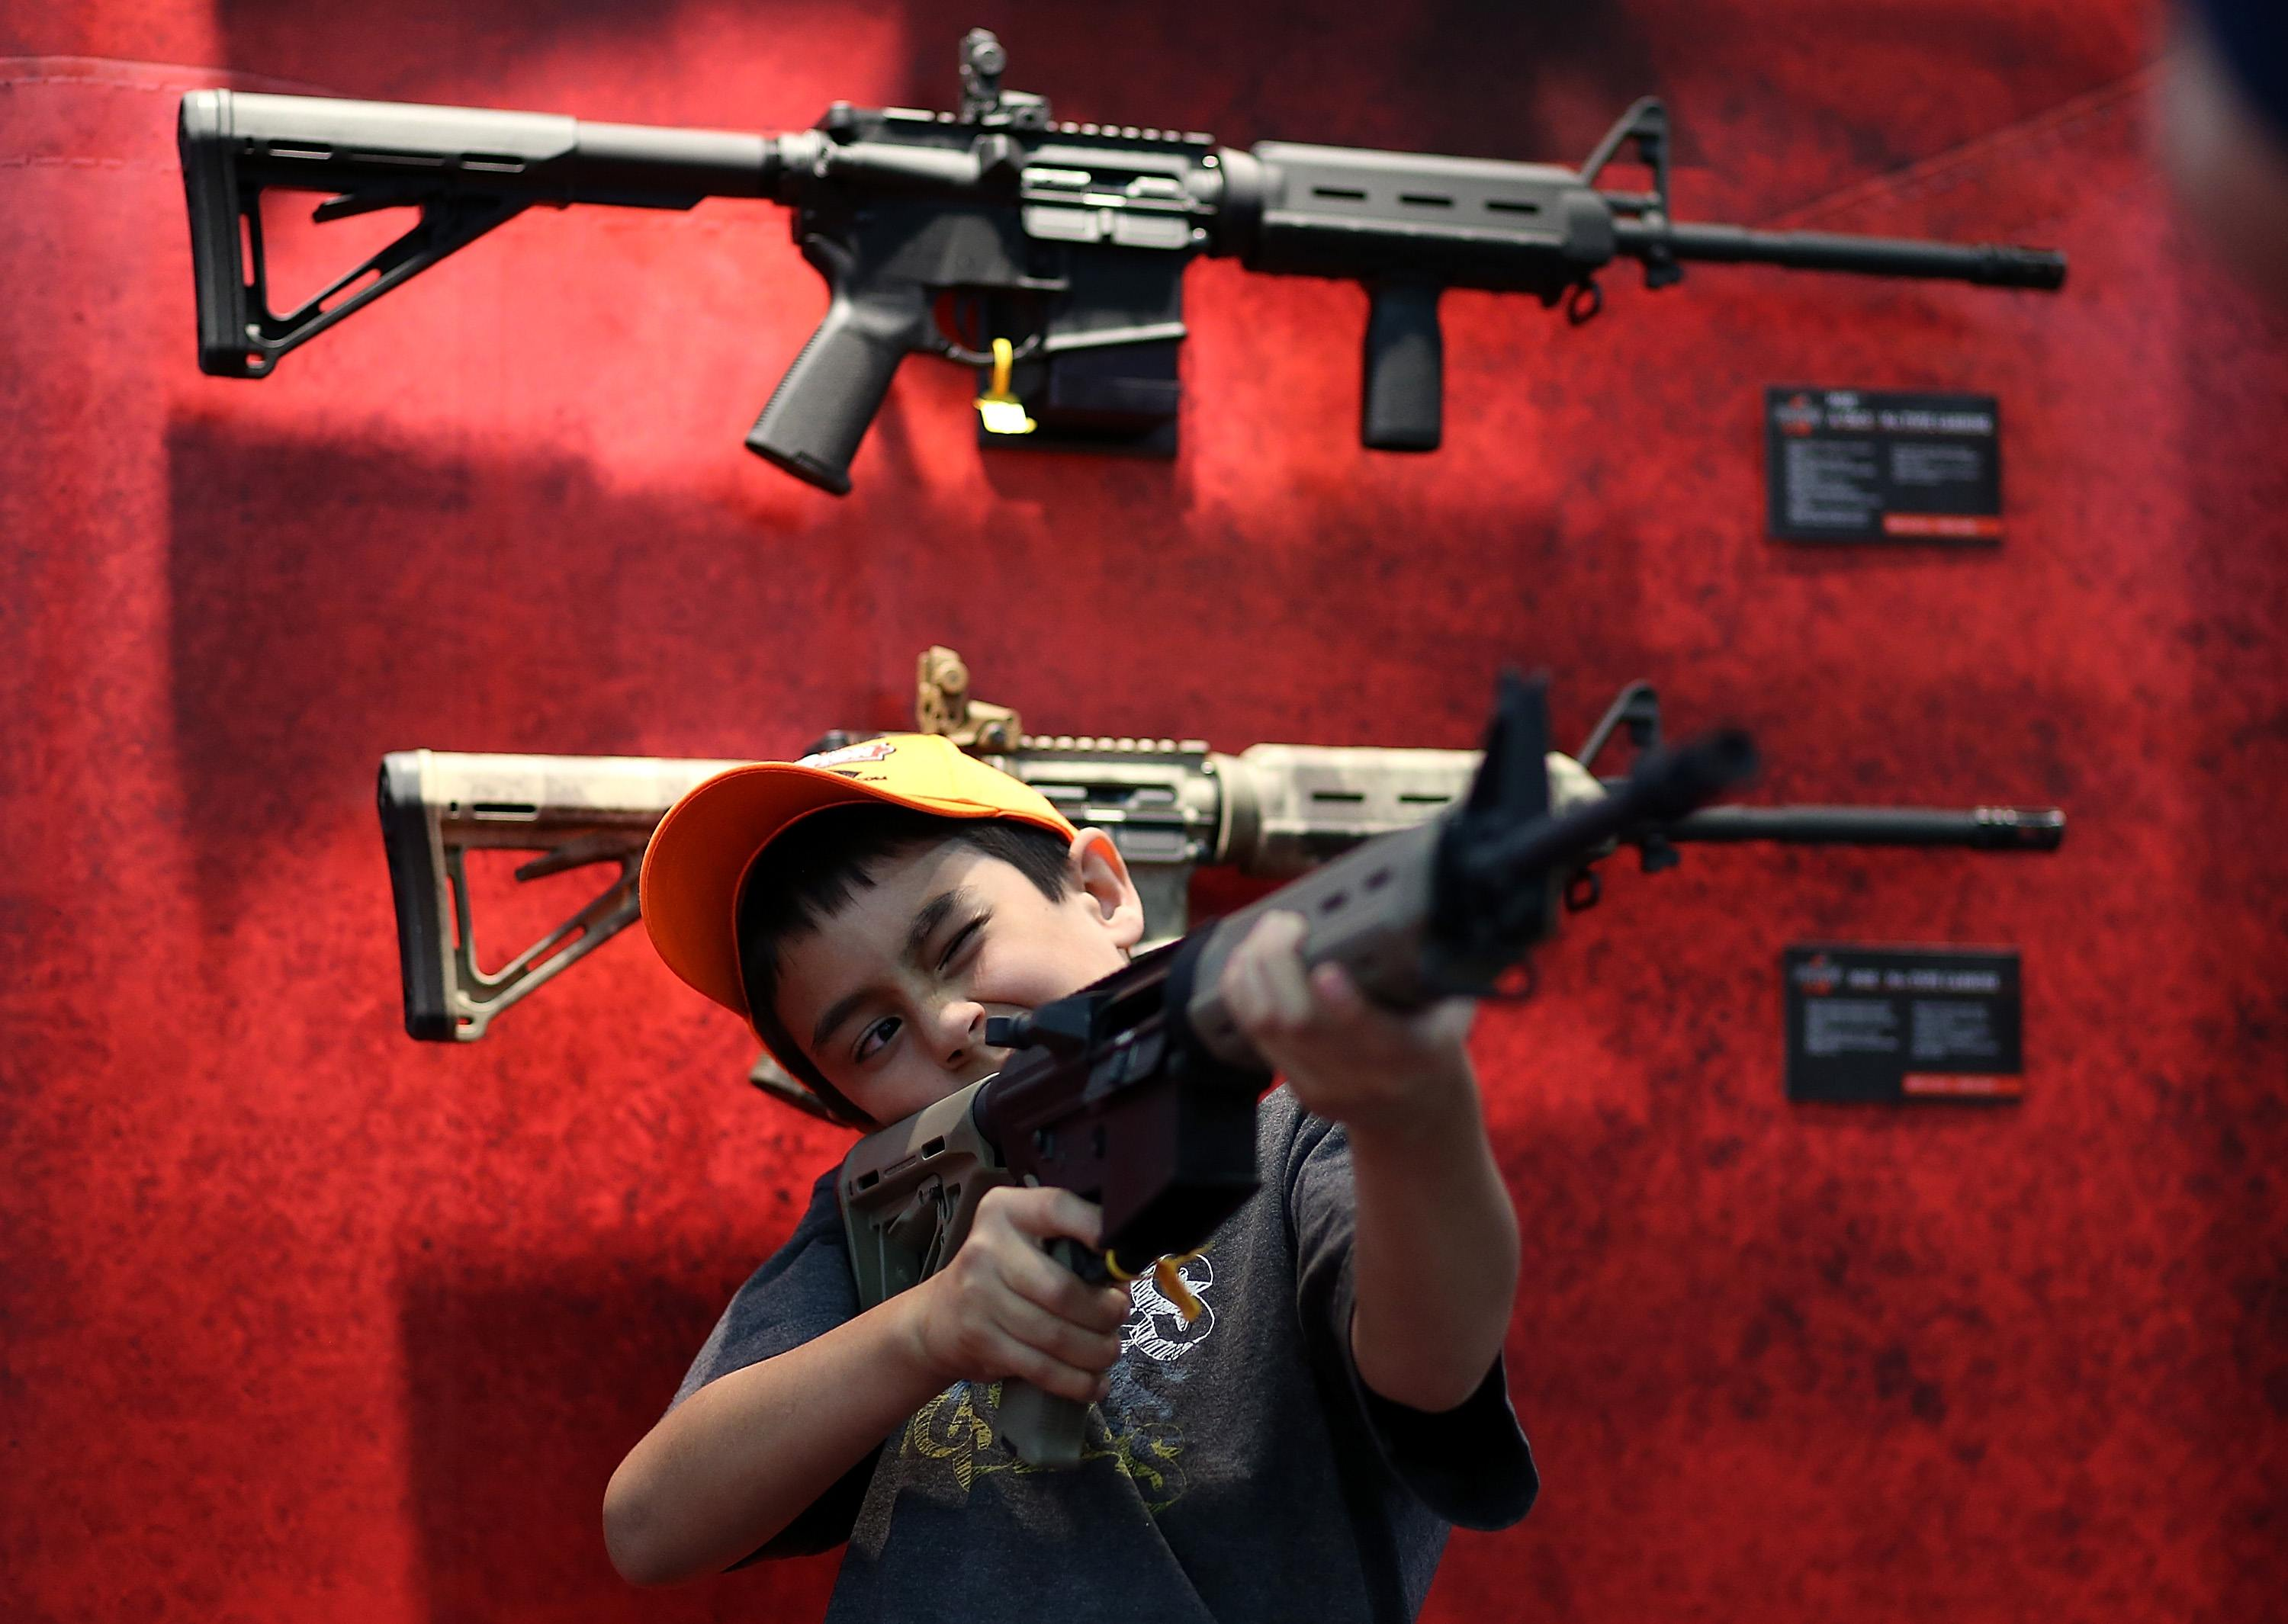 a child tries out an assault rifle against a red display with guns